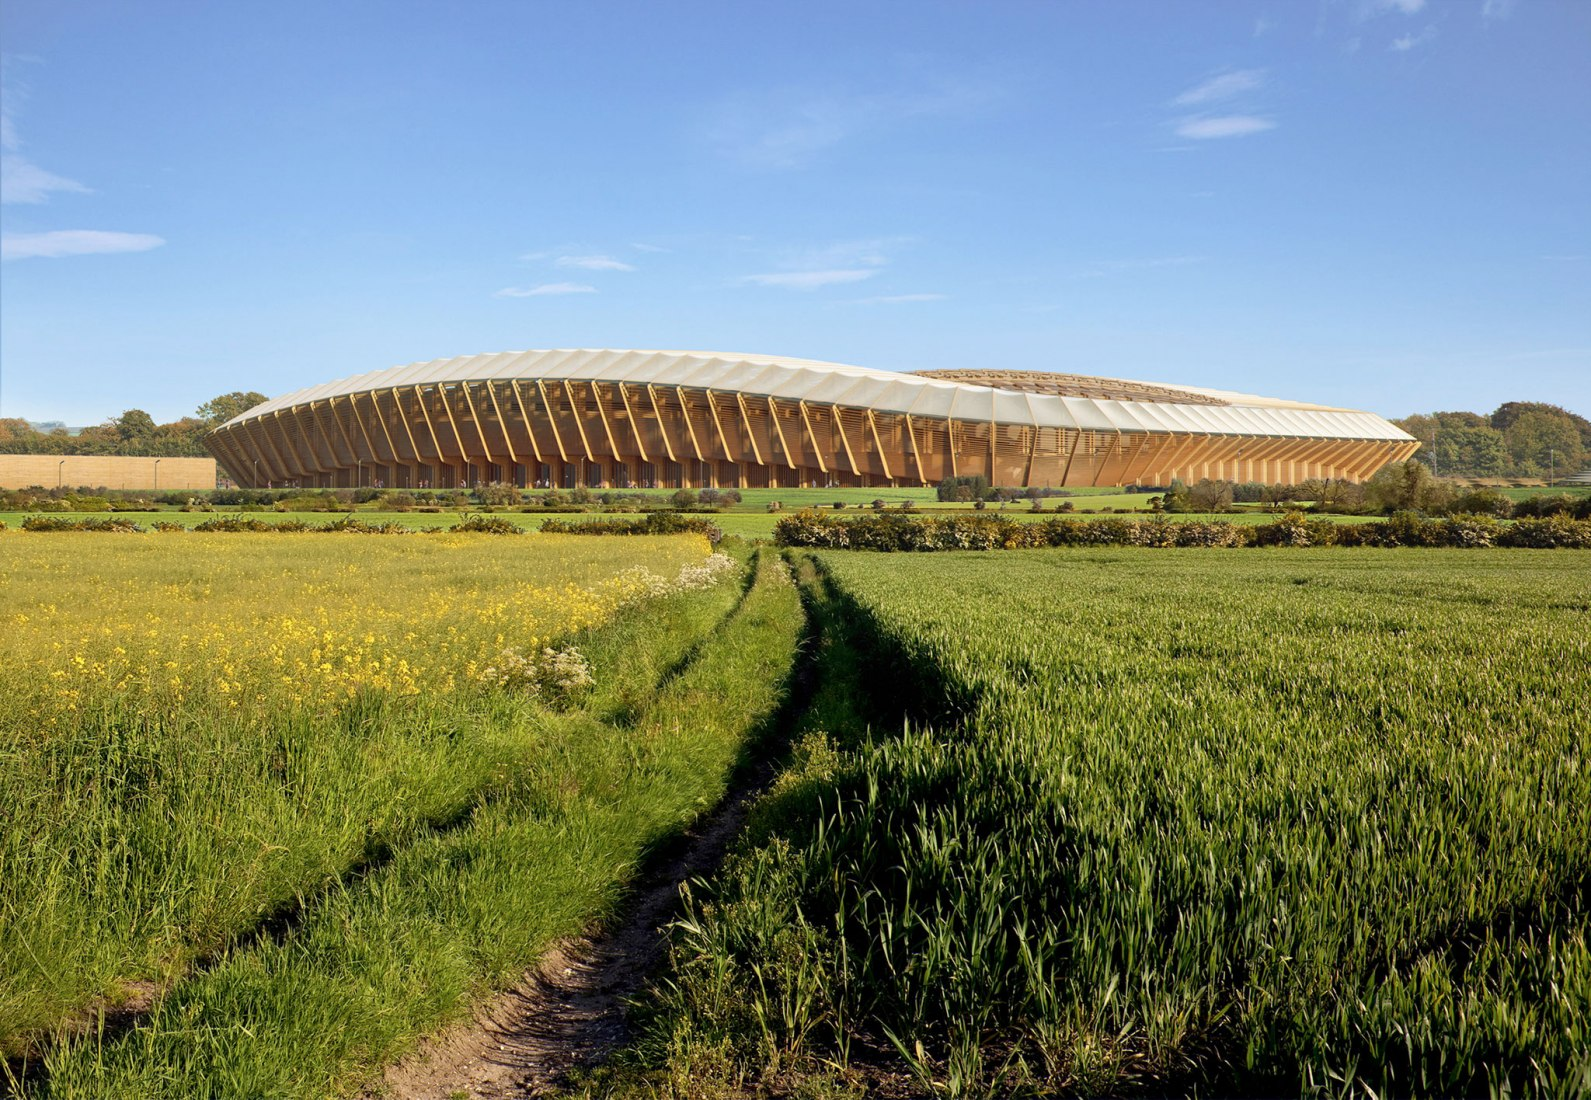 Ecopark Stadium by Zaha Hadid Architects. Rendering by MIR